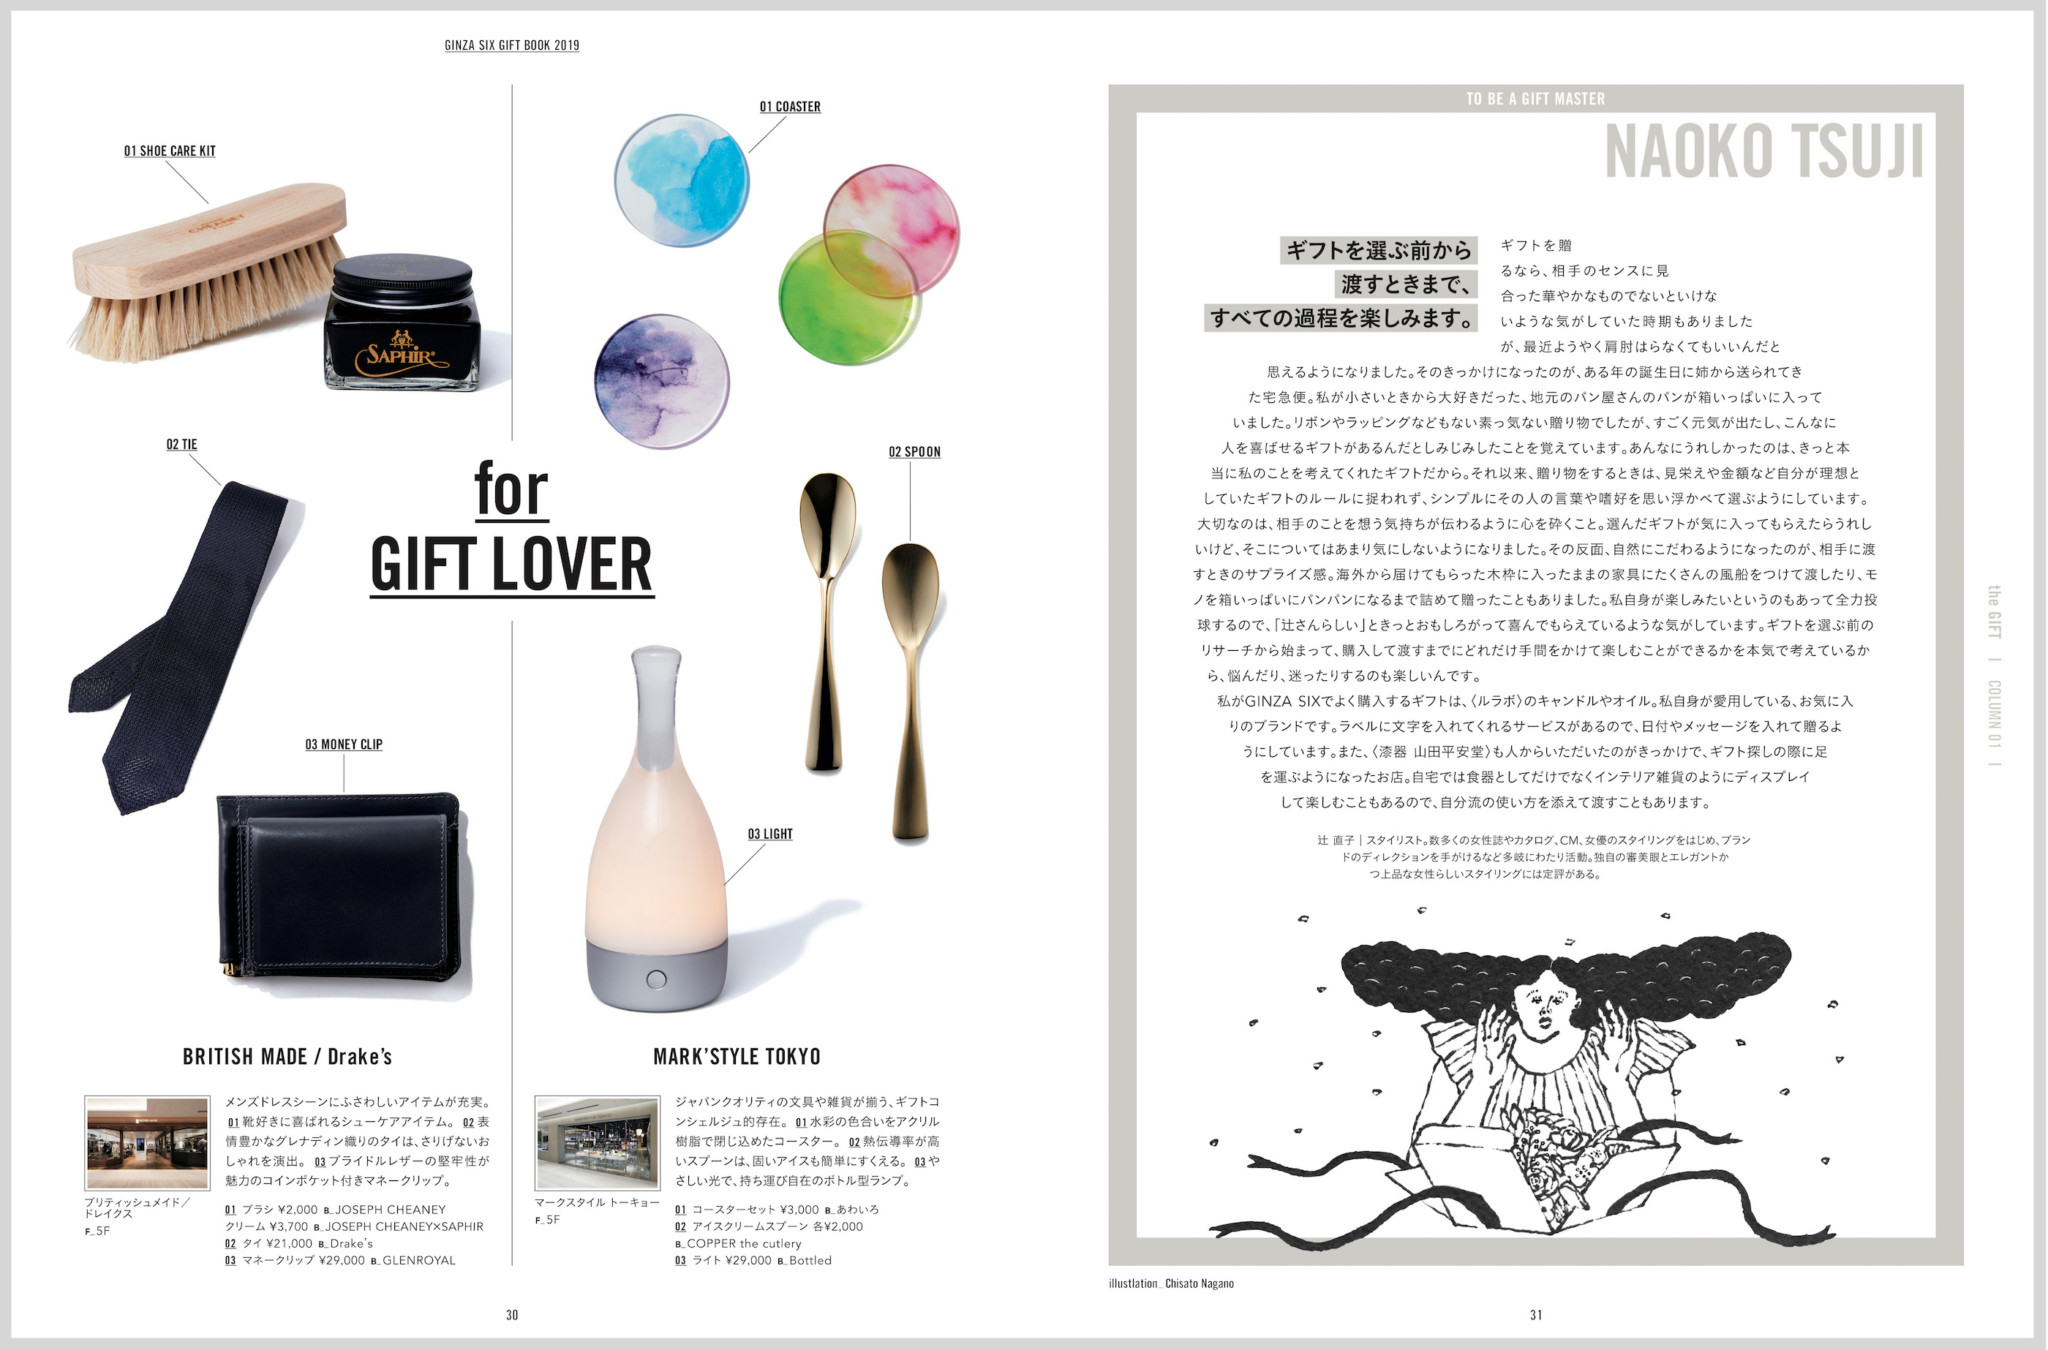 GINZA SIX GIFT BOOK 2019 the GIFT